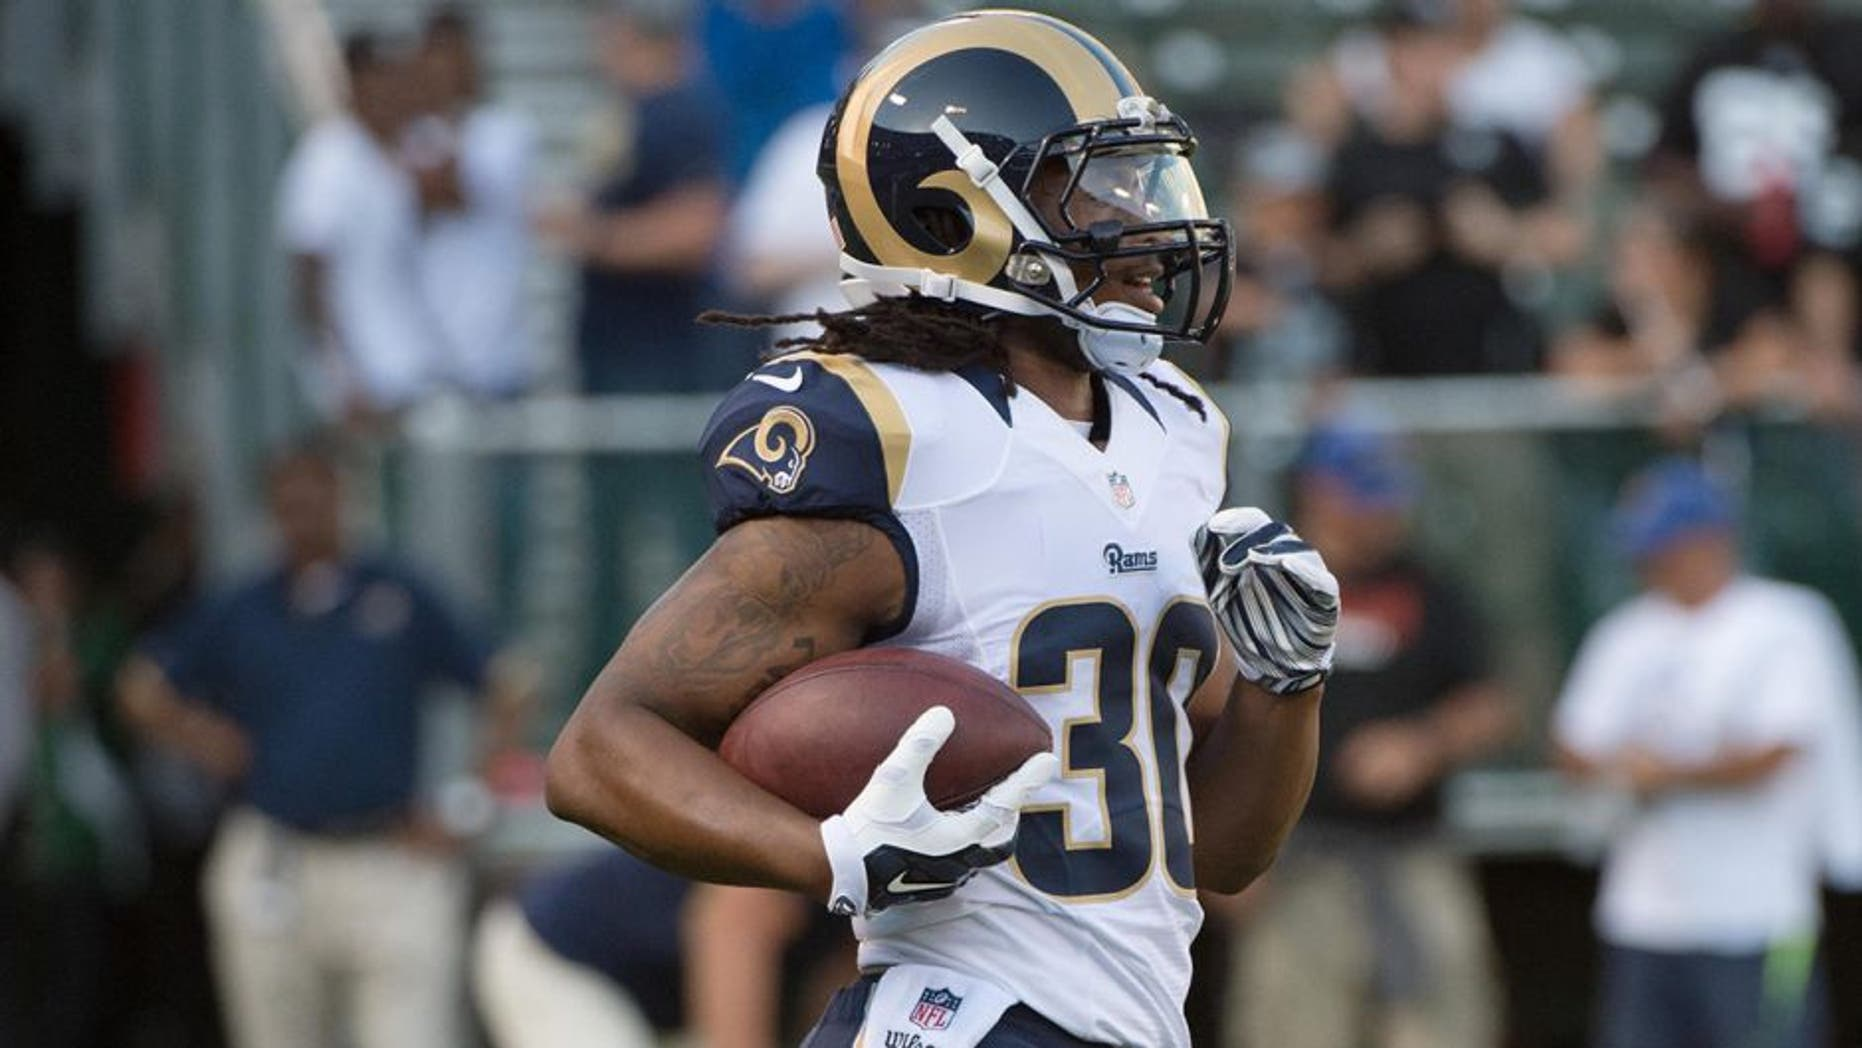 August 14, 2015; Oakland, CA, USA; St. Louis Rams running back Todd Gurley (30) warms up before a preseason NFL football game against the Oakland Raiders at O.co Coliseum. The Raiders defeated the Rams 18-3. Mandatory Credit: Kyle Terada-USA TODAY Sports